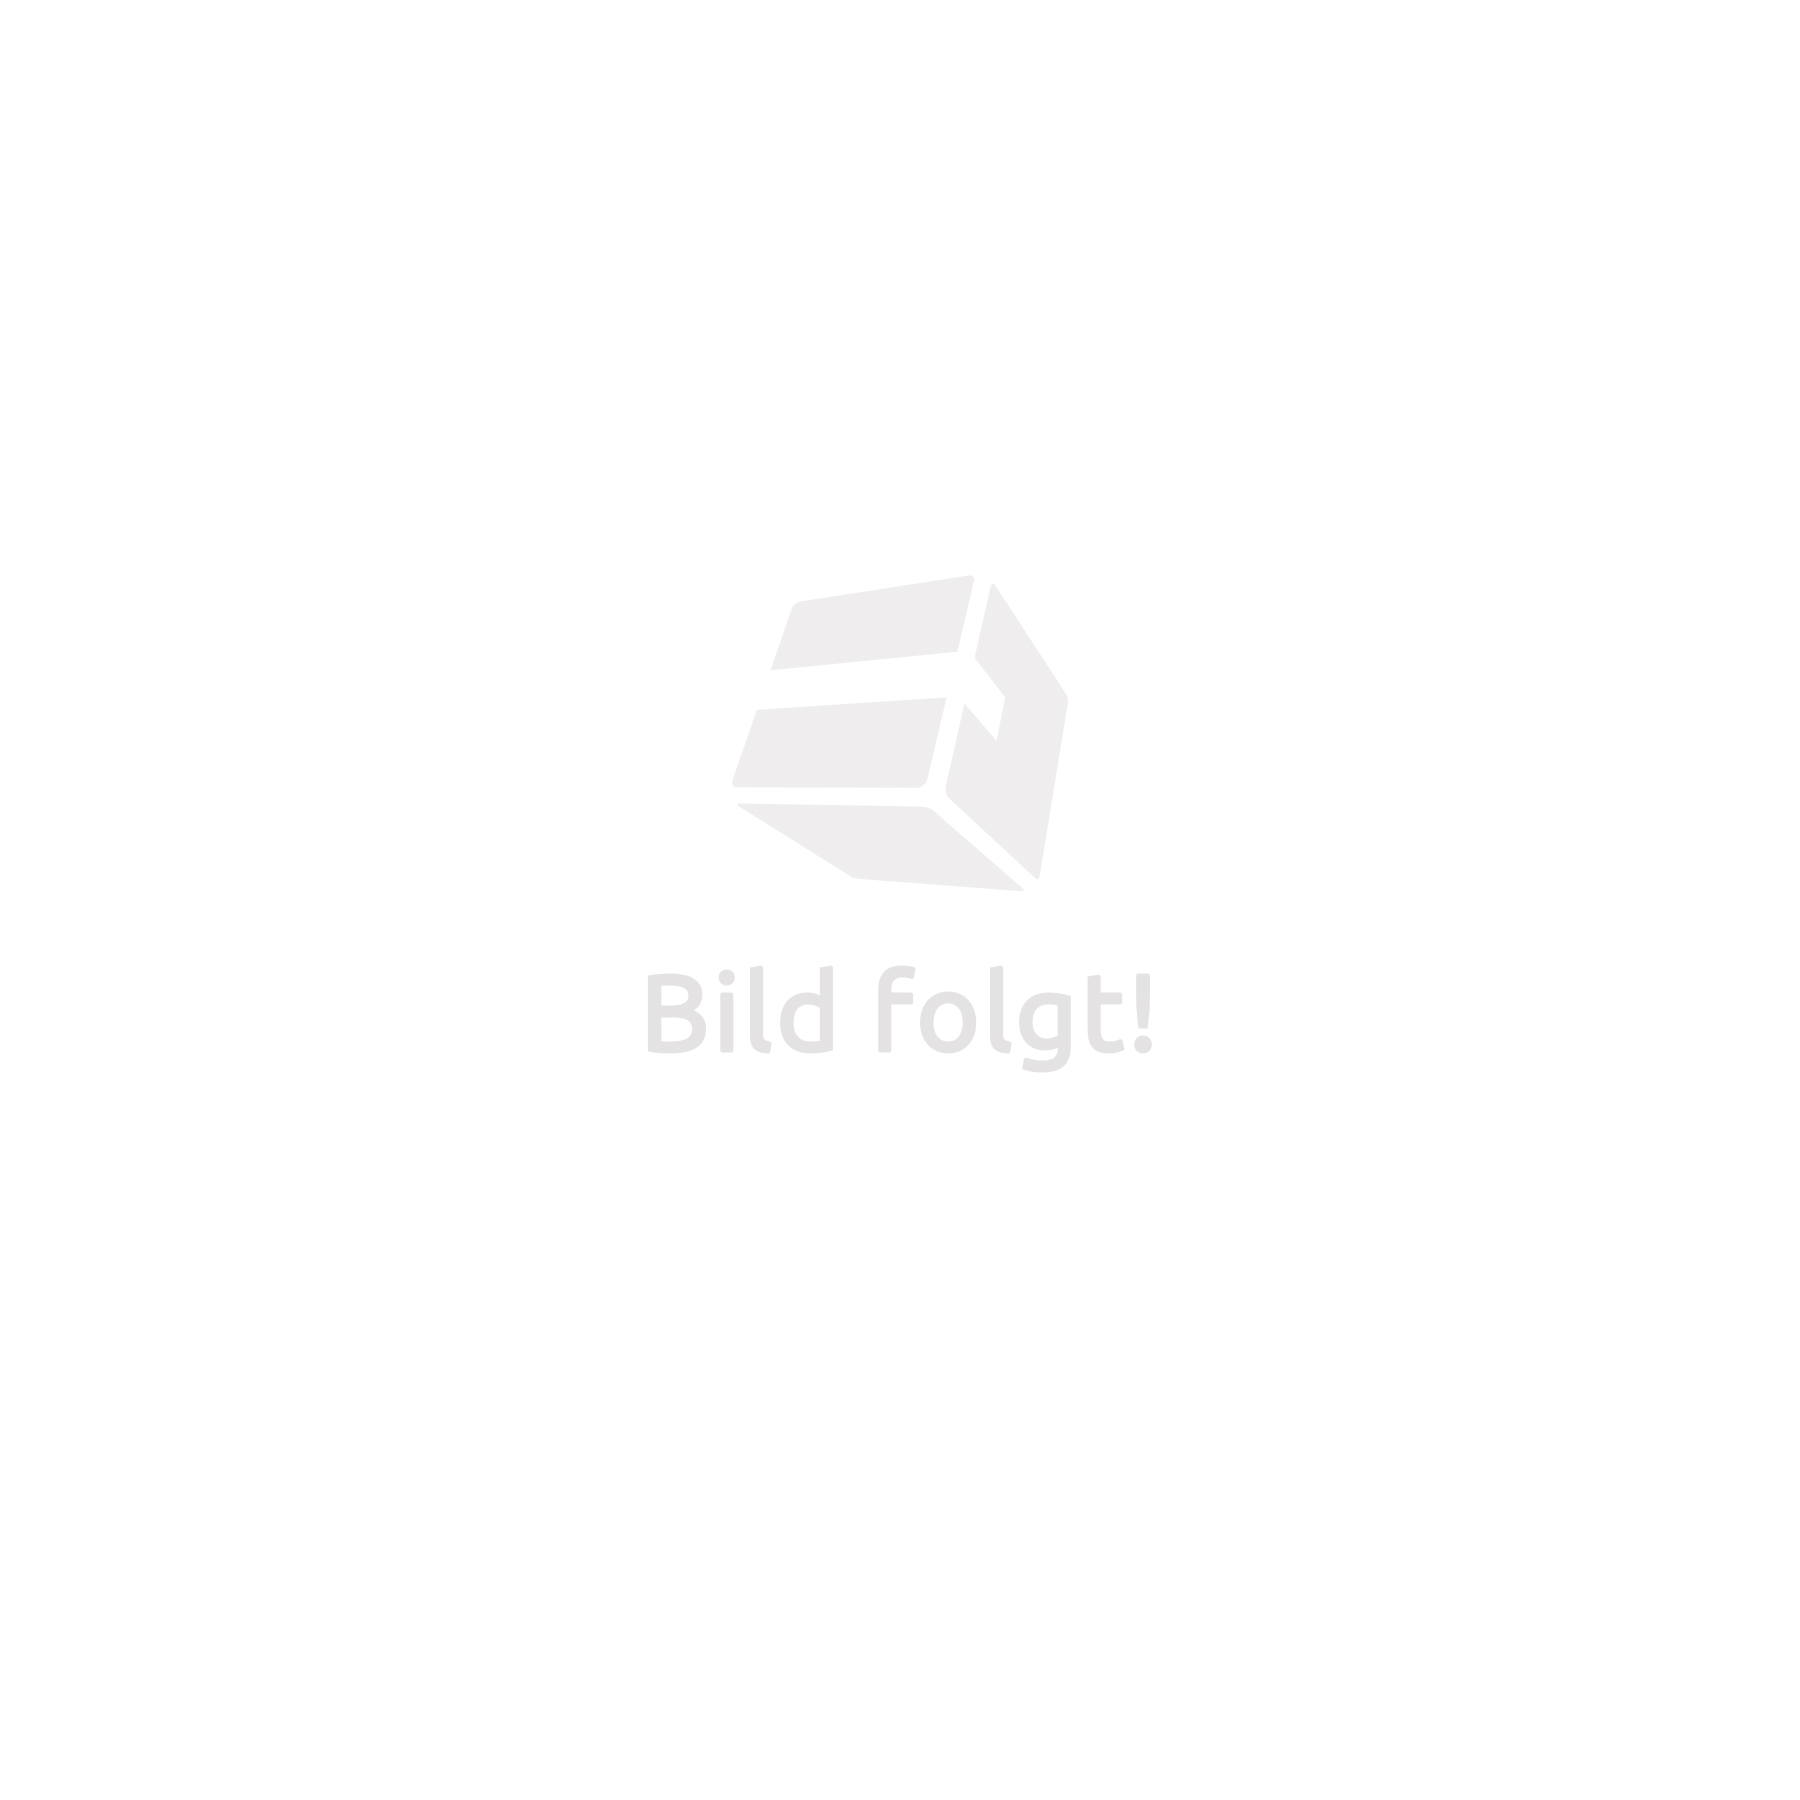 140x200cm schlafzimmer metallbett bettgestell bett schwarz lattenrost b ware ebay. Black Bedroom Furniture Sets. Home Design Ideas